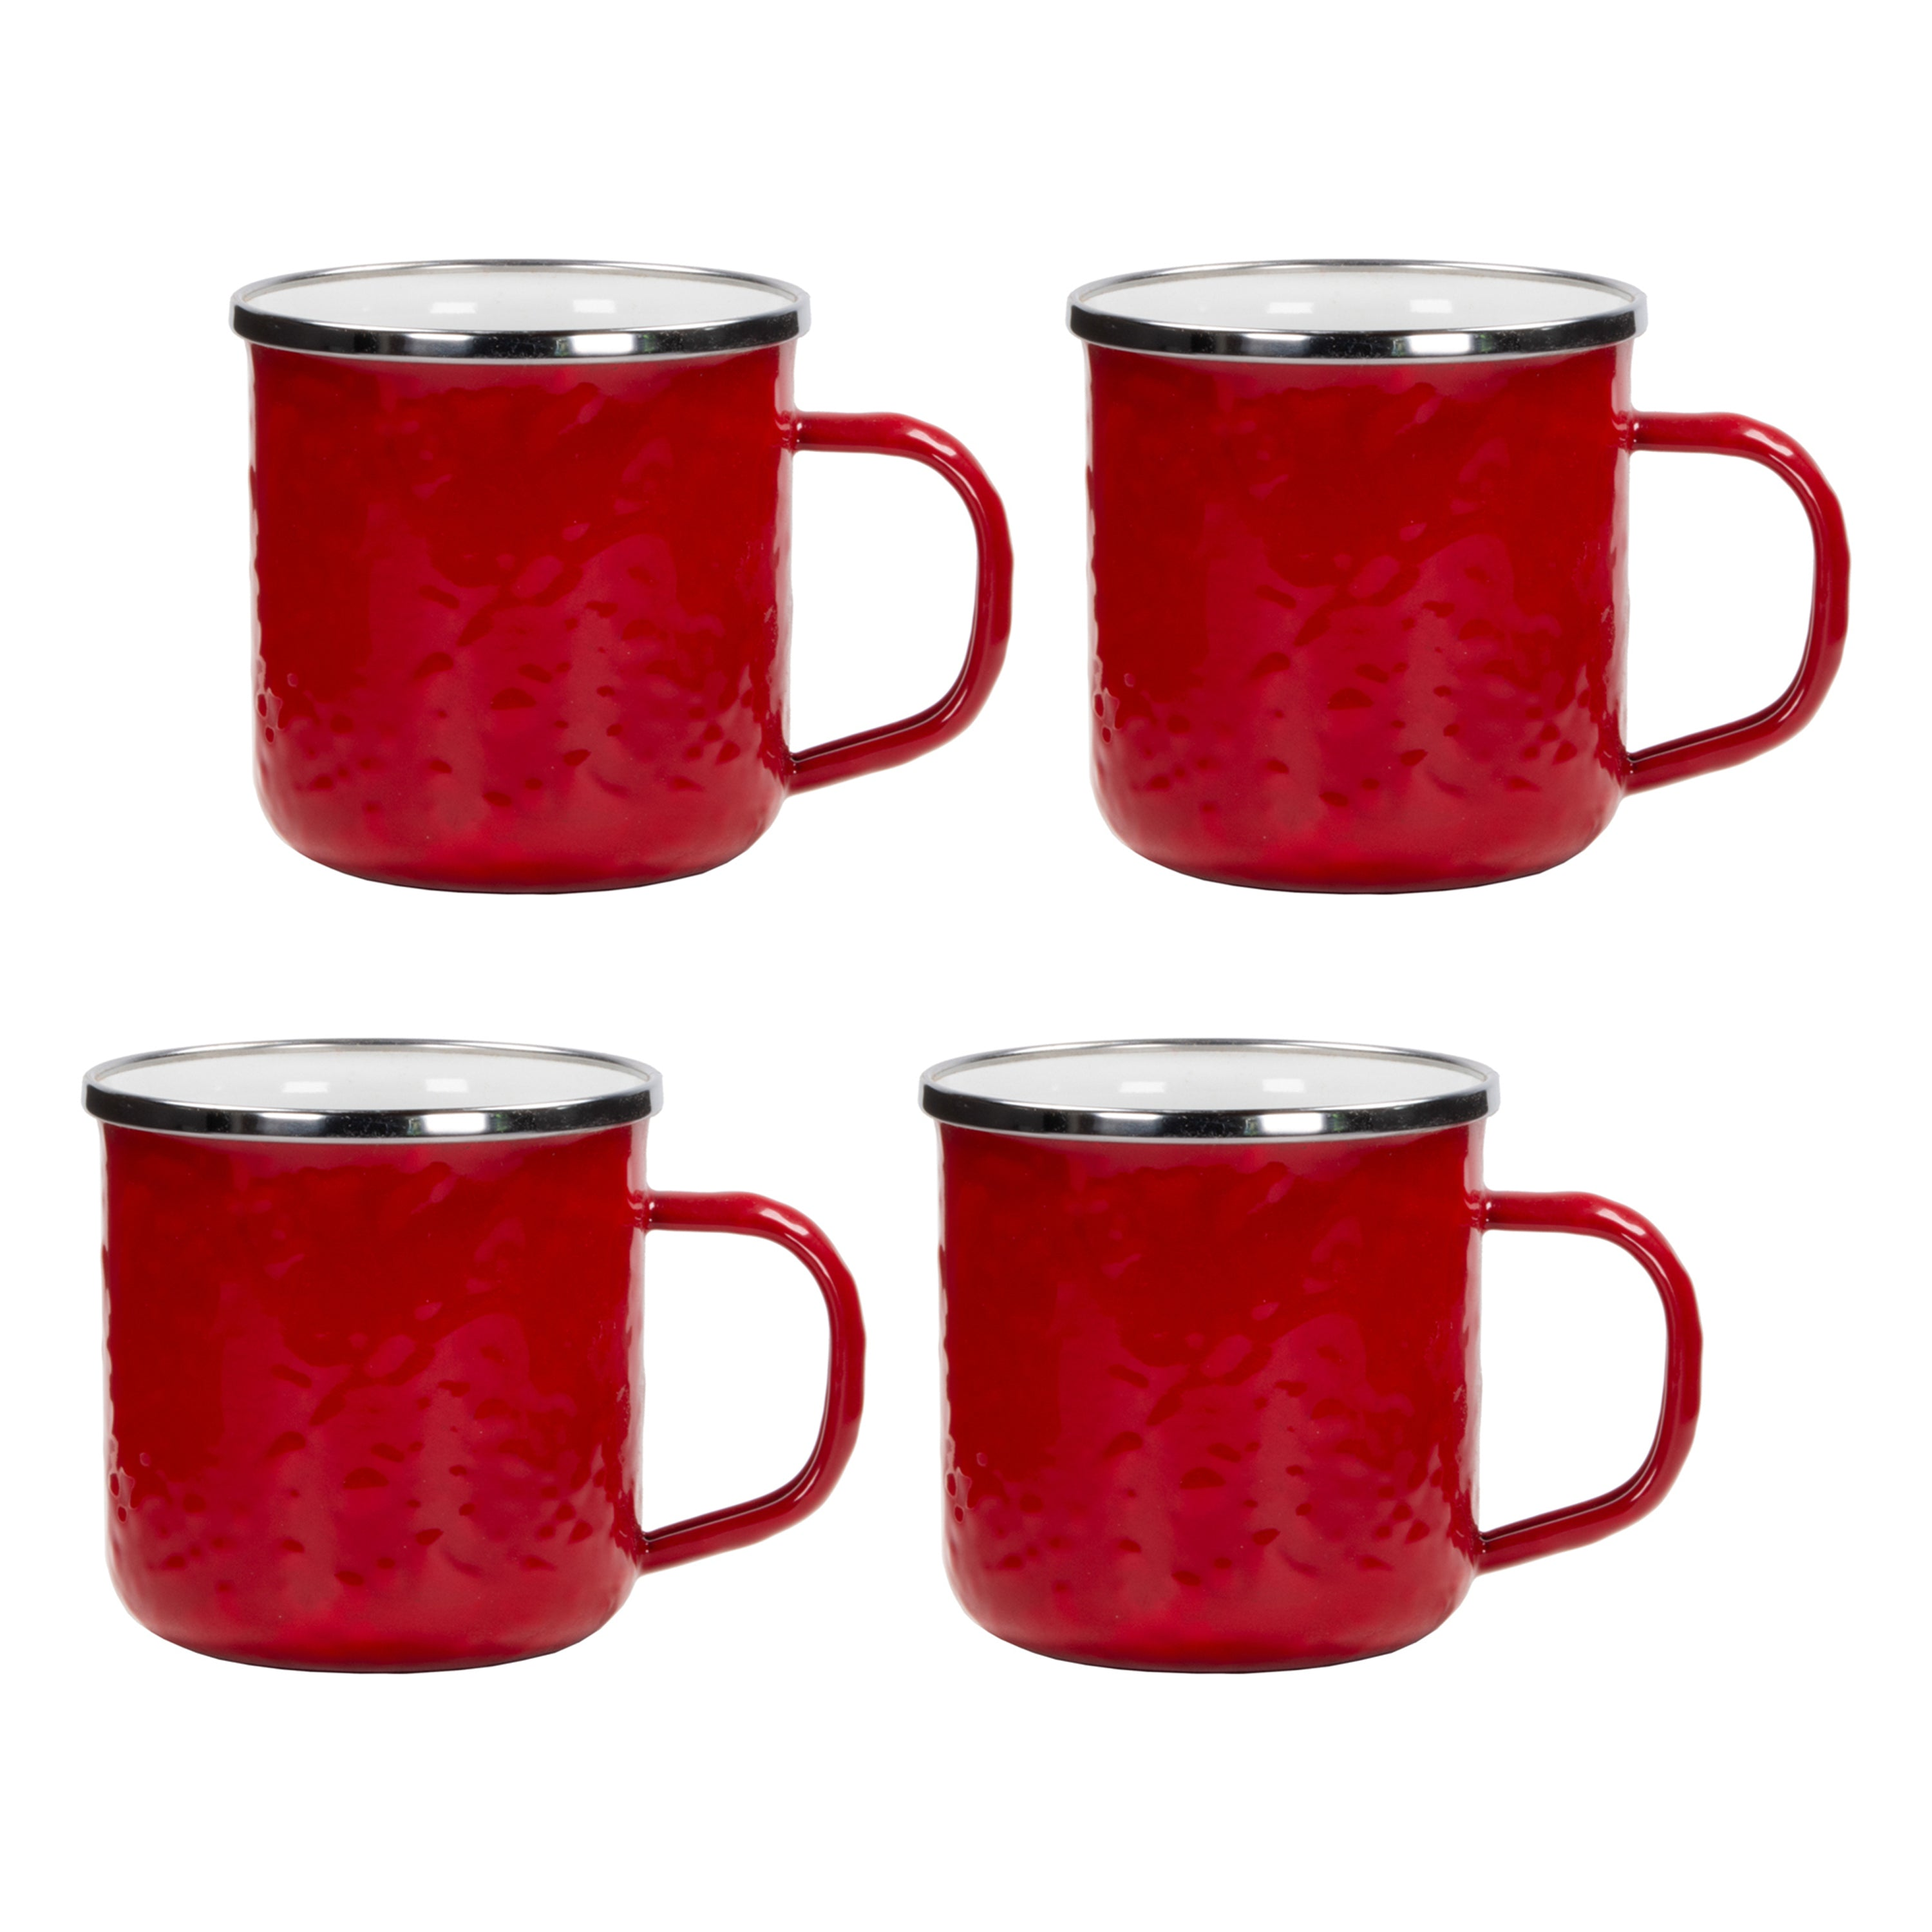 RR05S4 - Set of 4 Solid Red Adult Mugs Image 1